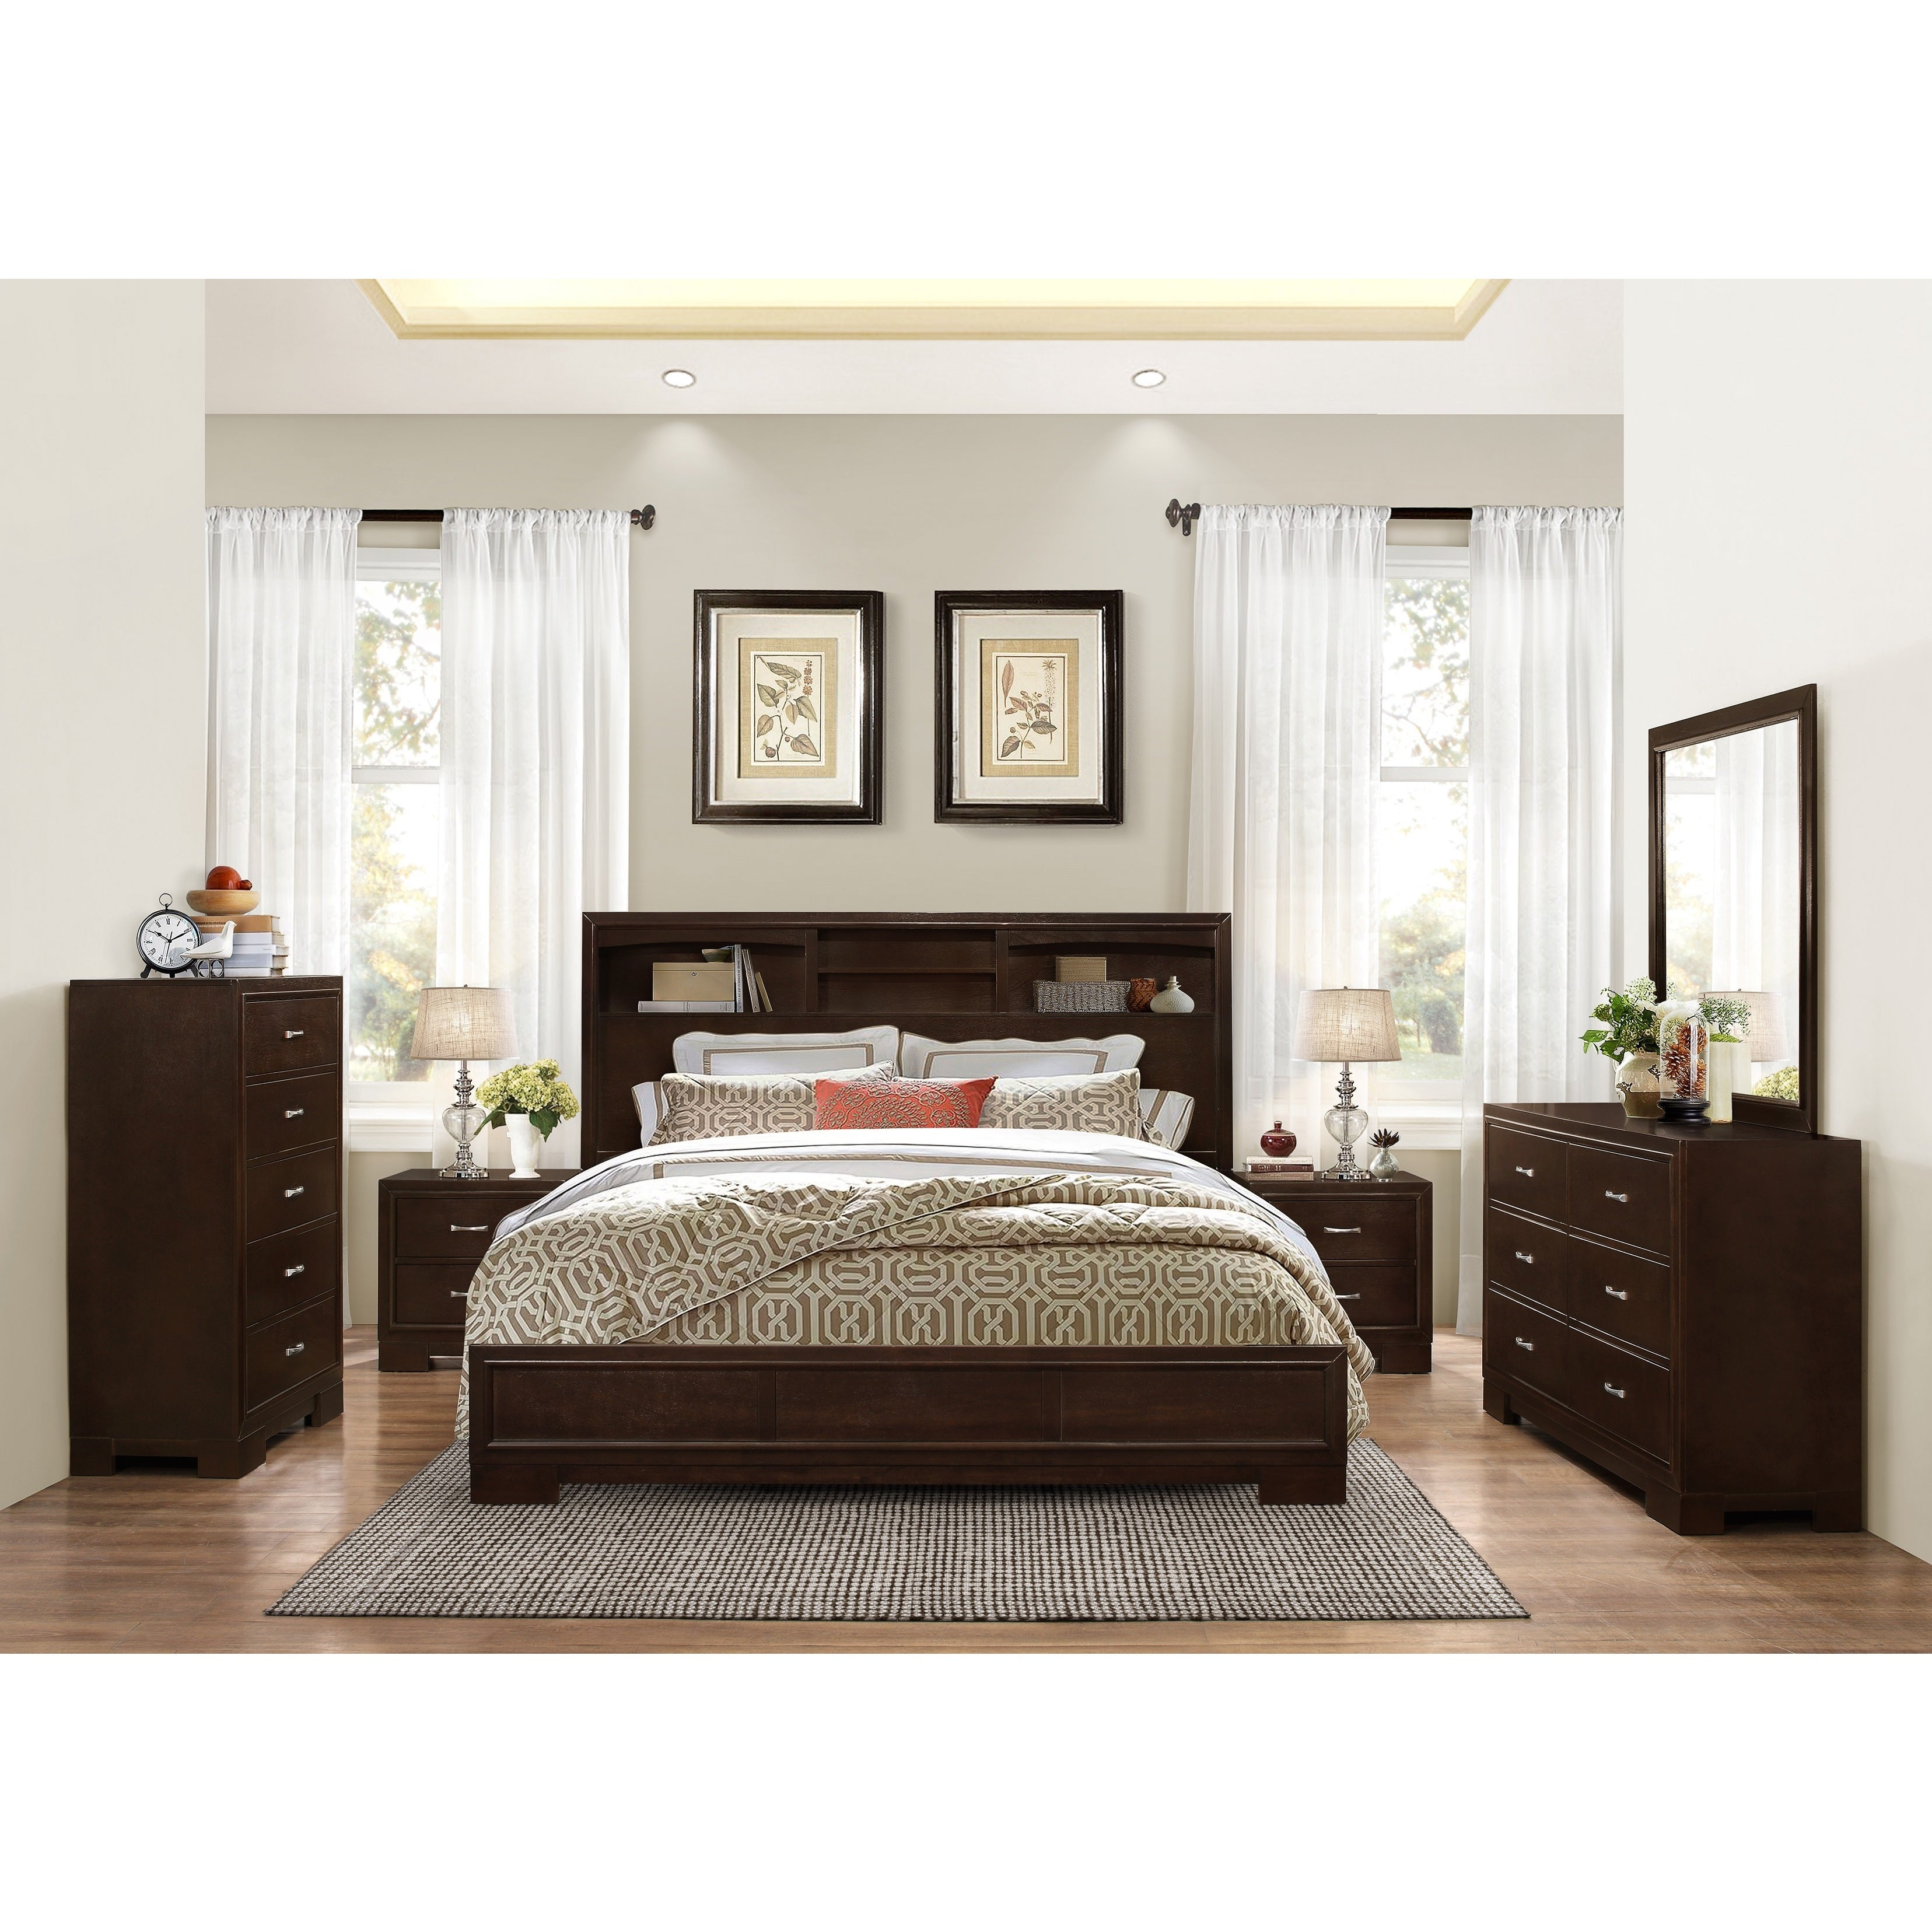 Montana Walnut Modern 4 Piece Wood Bedroom Set With King Bed Dresser Mirror 2 Nightstands Chest pertaining to Modern King Bedroom Sets